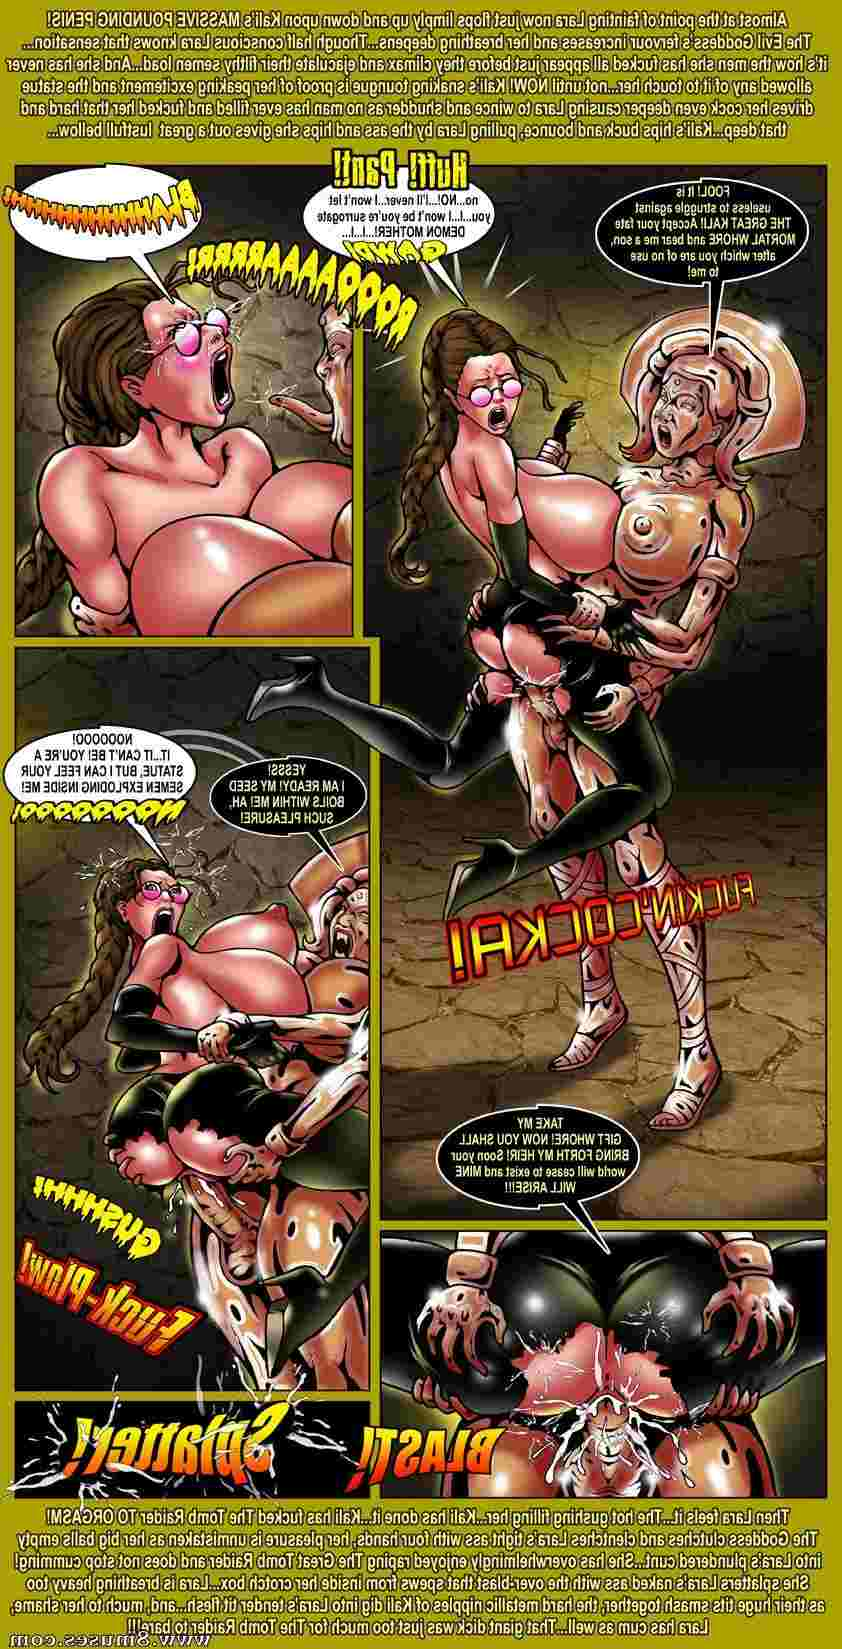 Smudge-Comics/Superheroes/Tomb-Raider-Lara-Croft Tomb_Raider_-_Lara_Croft__8muses_-_Sex_and_Porn_Comics_7.jpg